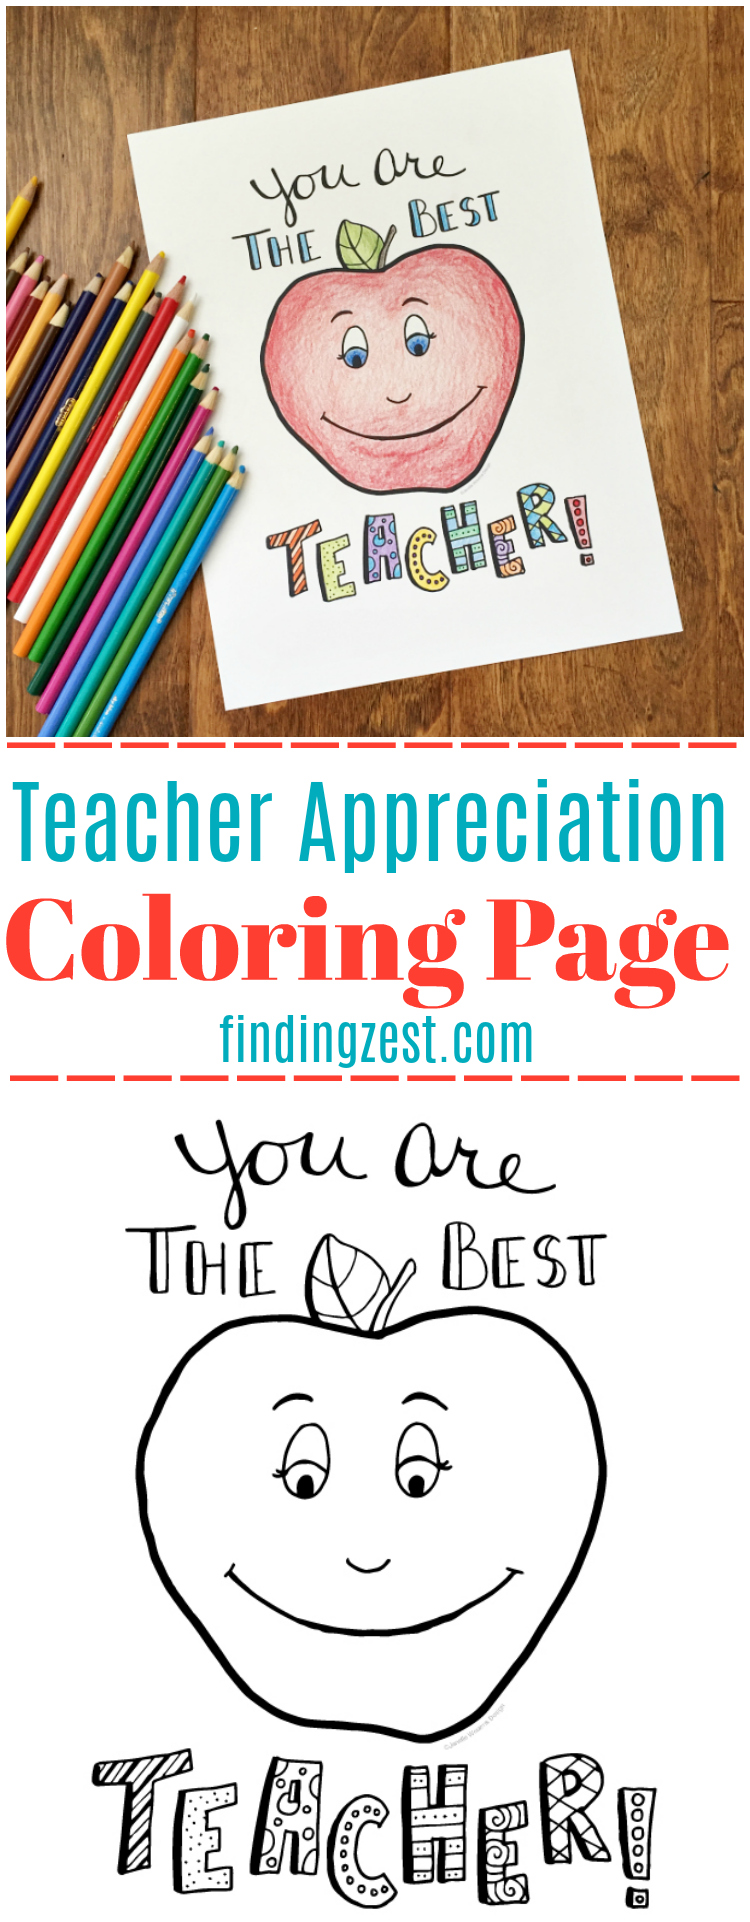 Teacher Appreciation Coloring Page Free Printable Finding Zest